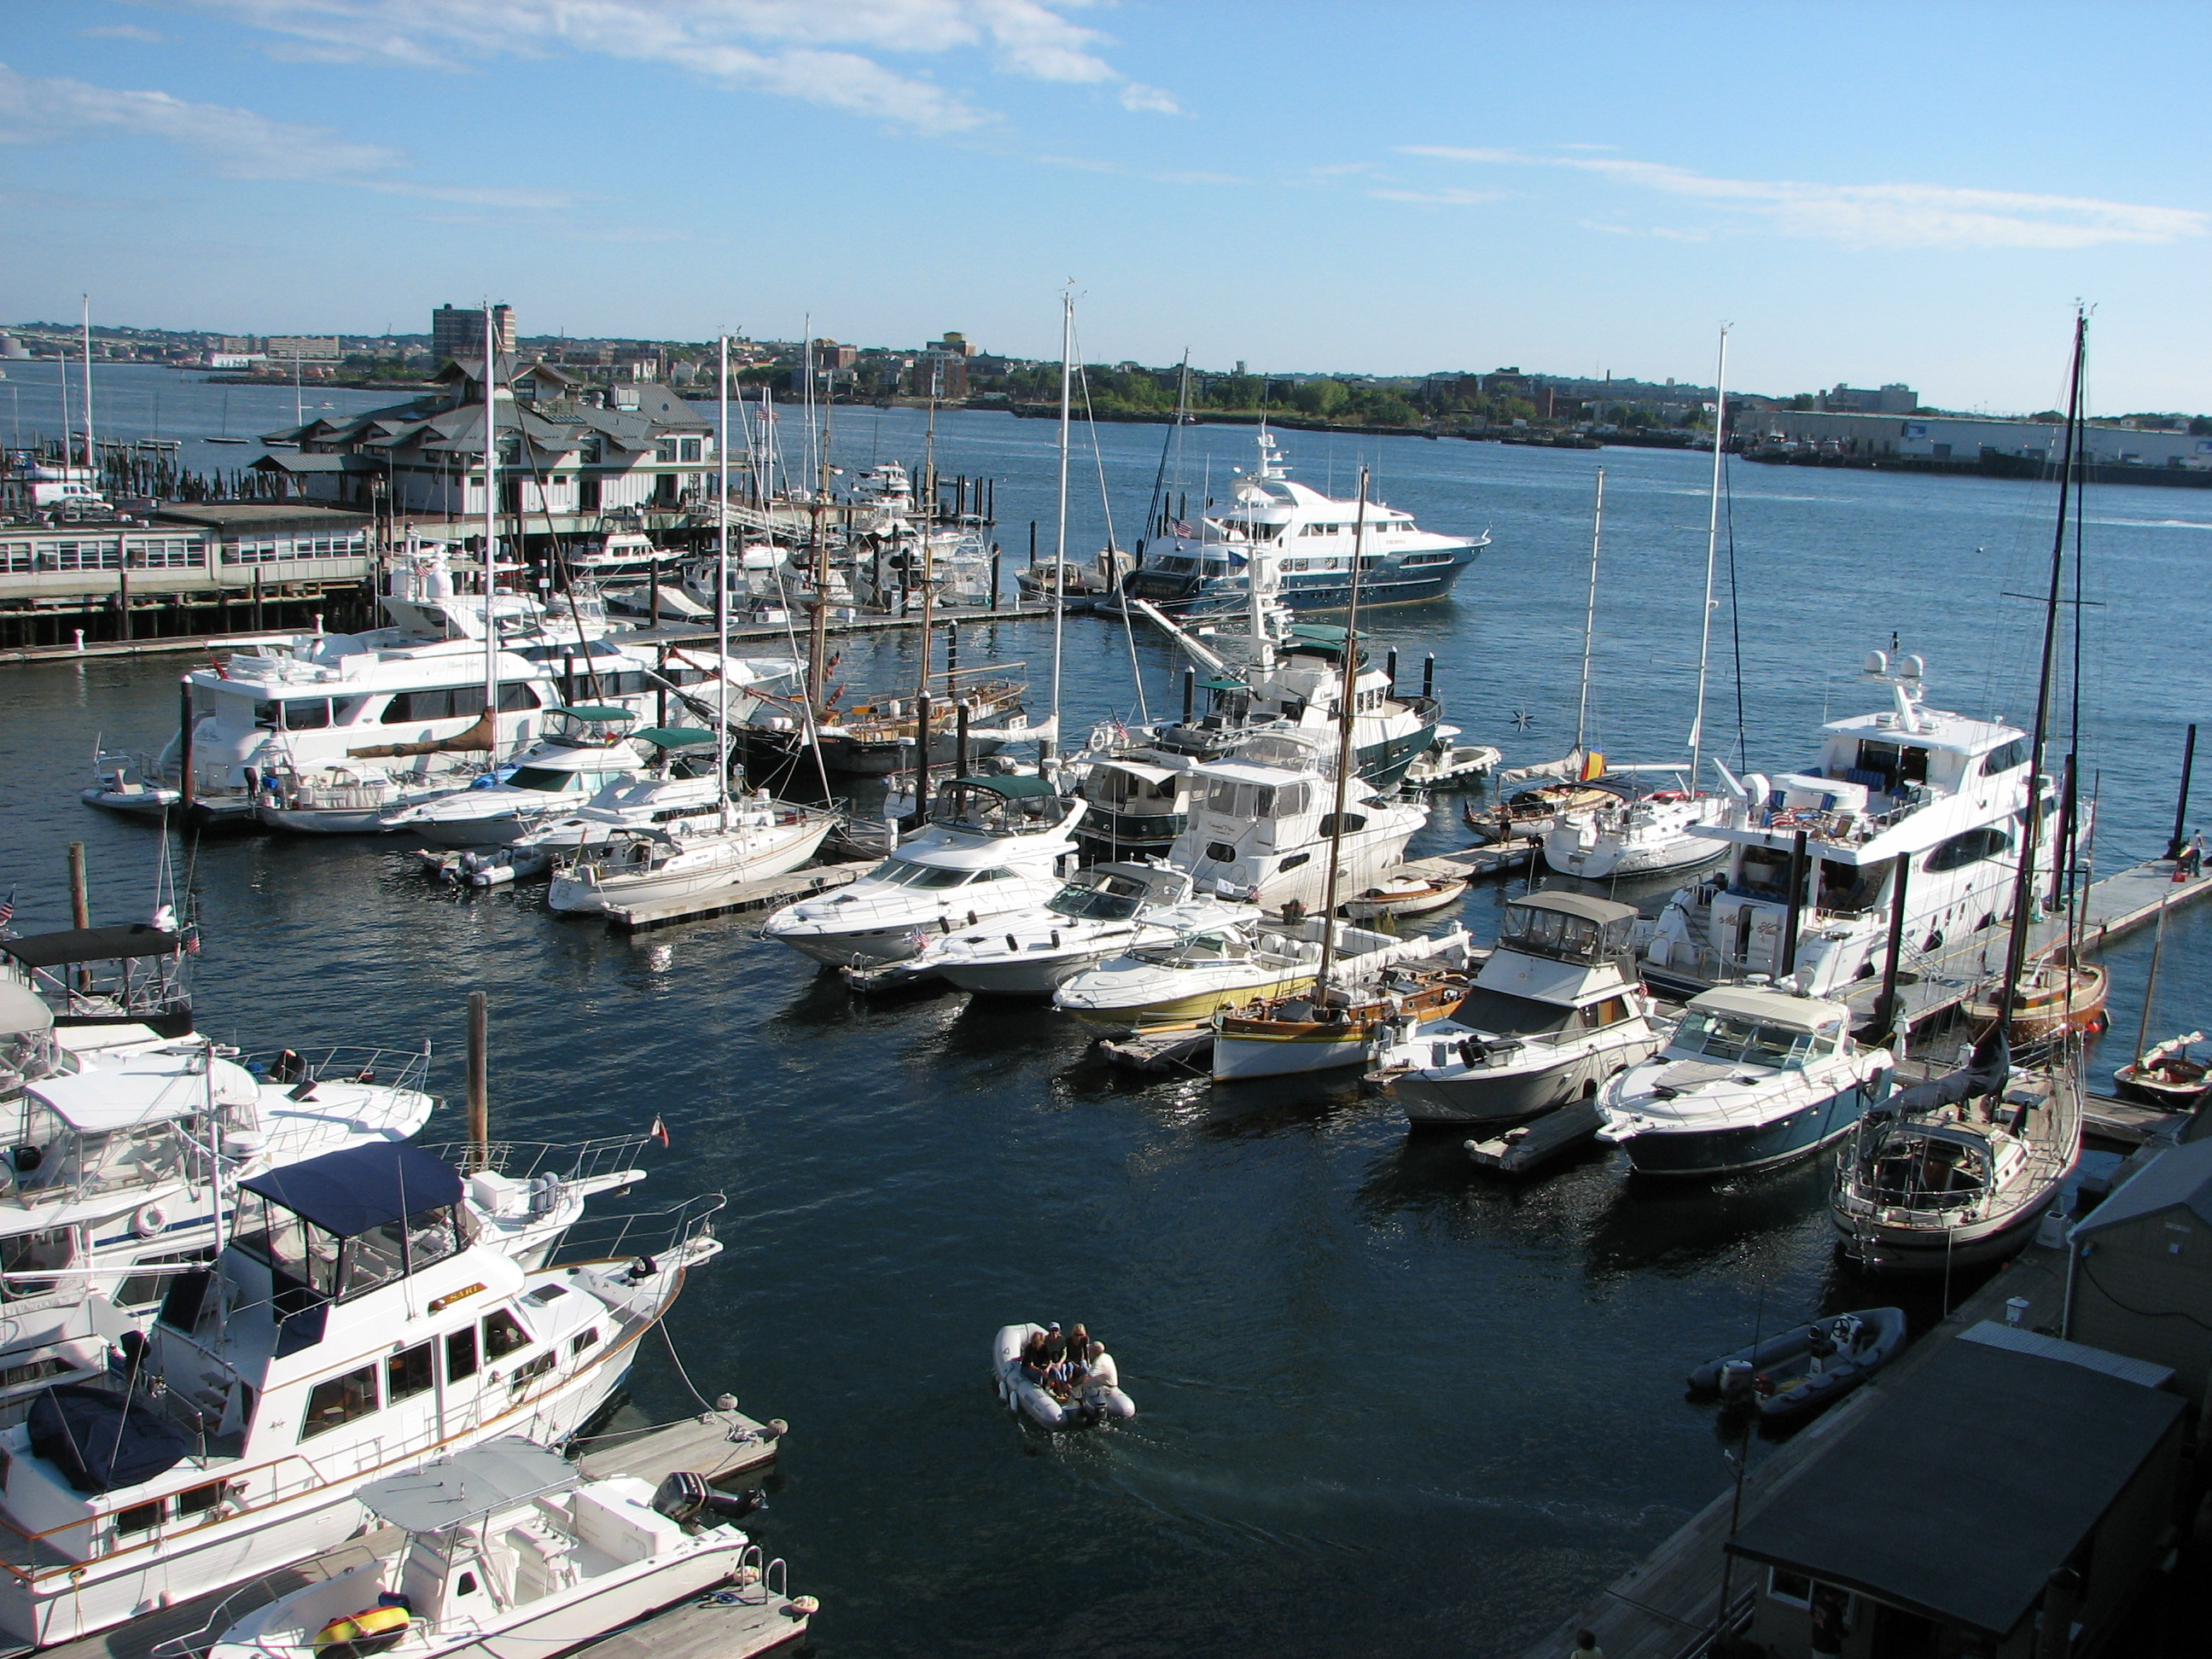 Boston Waterboat Marina in Boston, MA